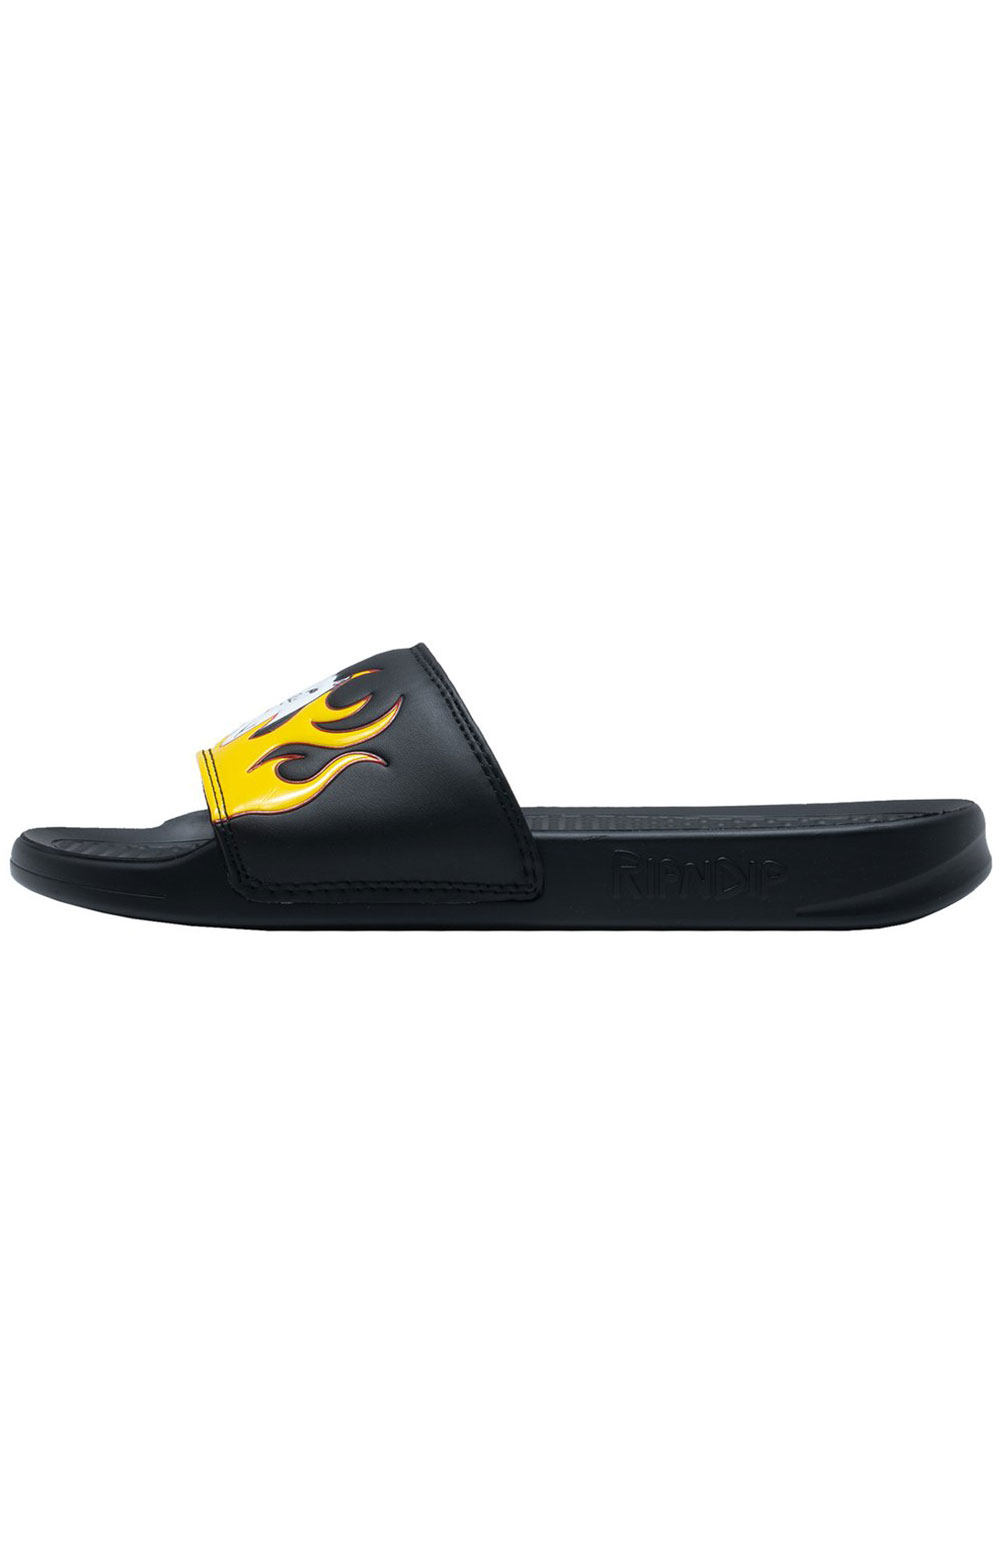 Welcome To Heck Slides - Black Flame  2